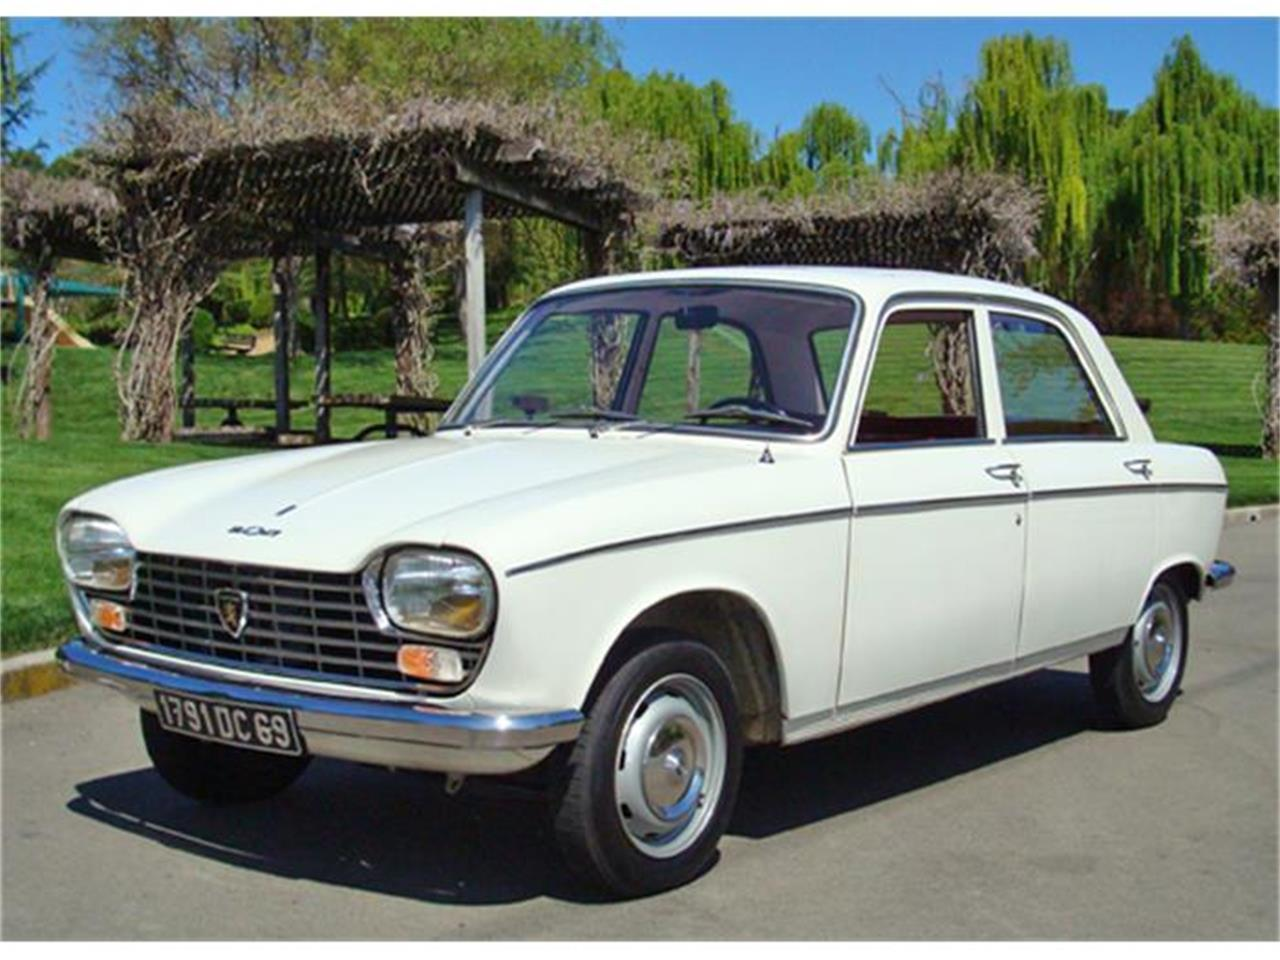 Cohort Capsule: Peugeot 204 Coupe - Sweet Baby Peugeot